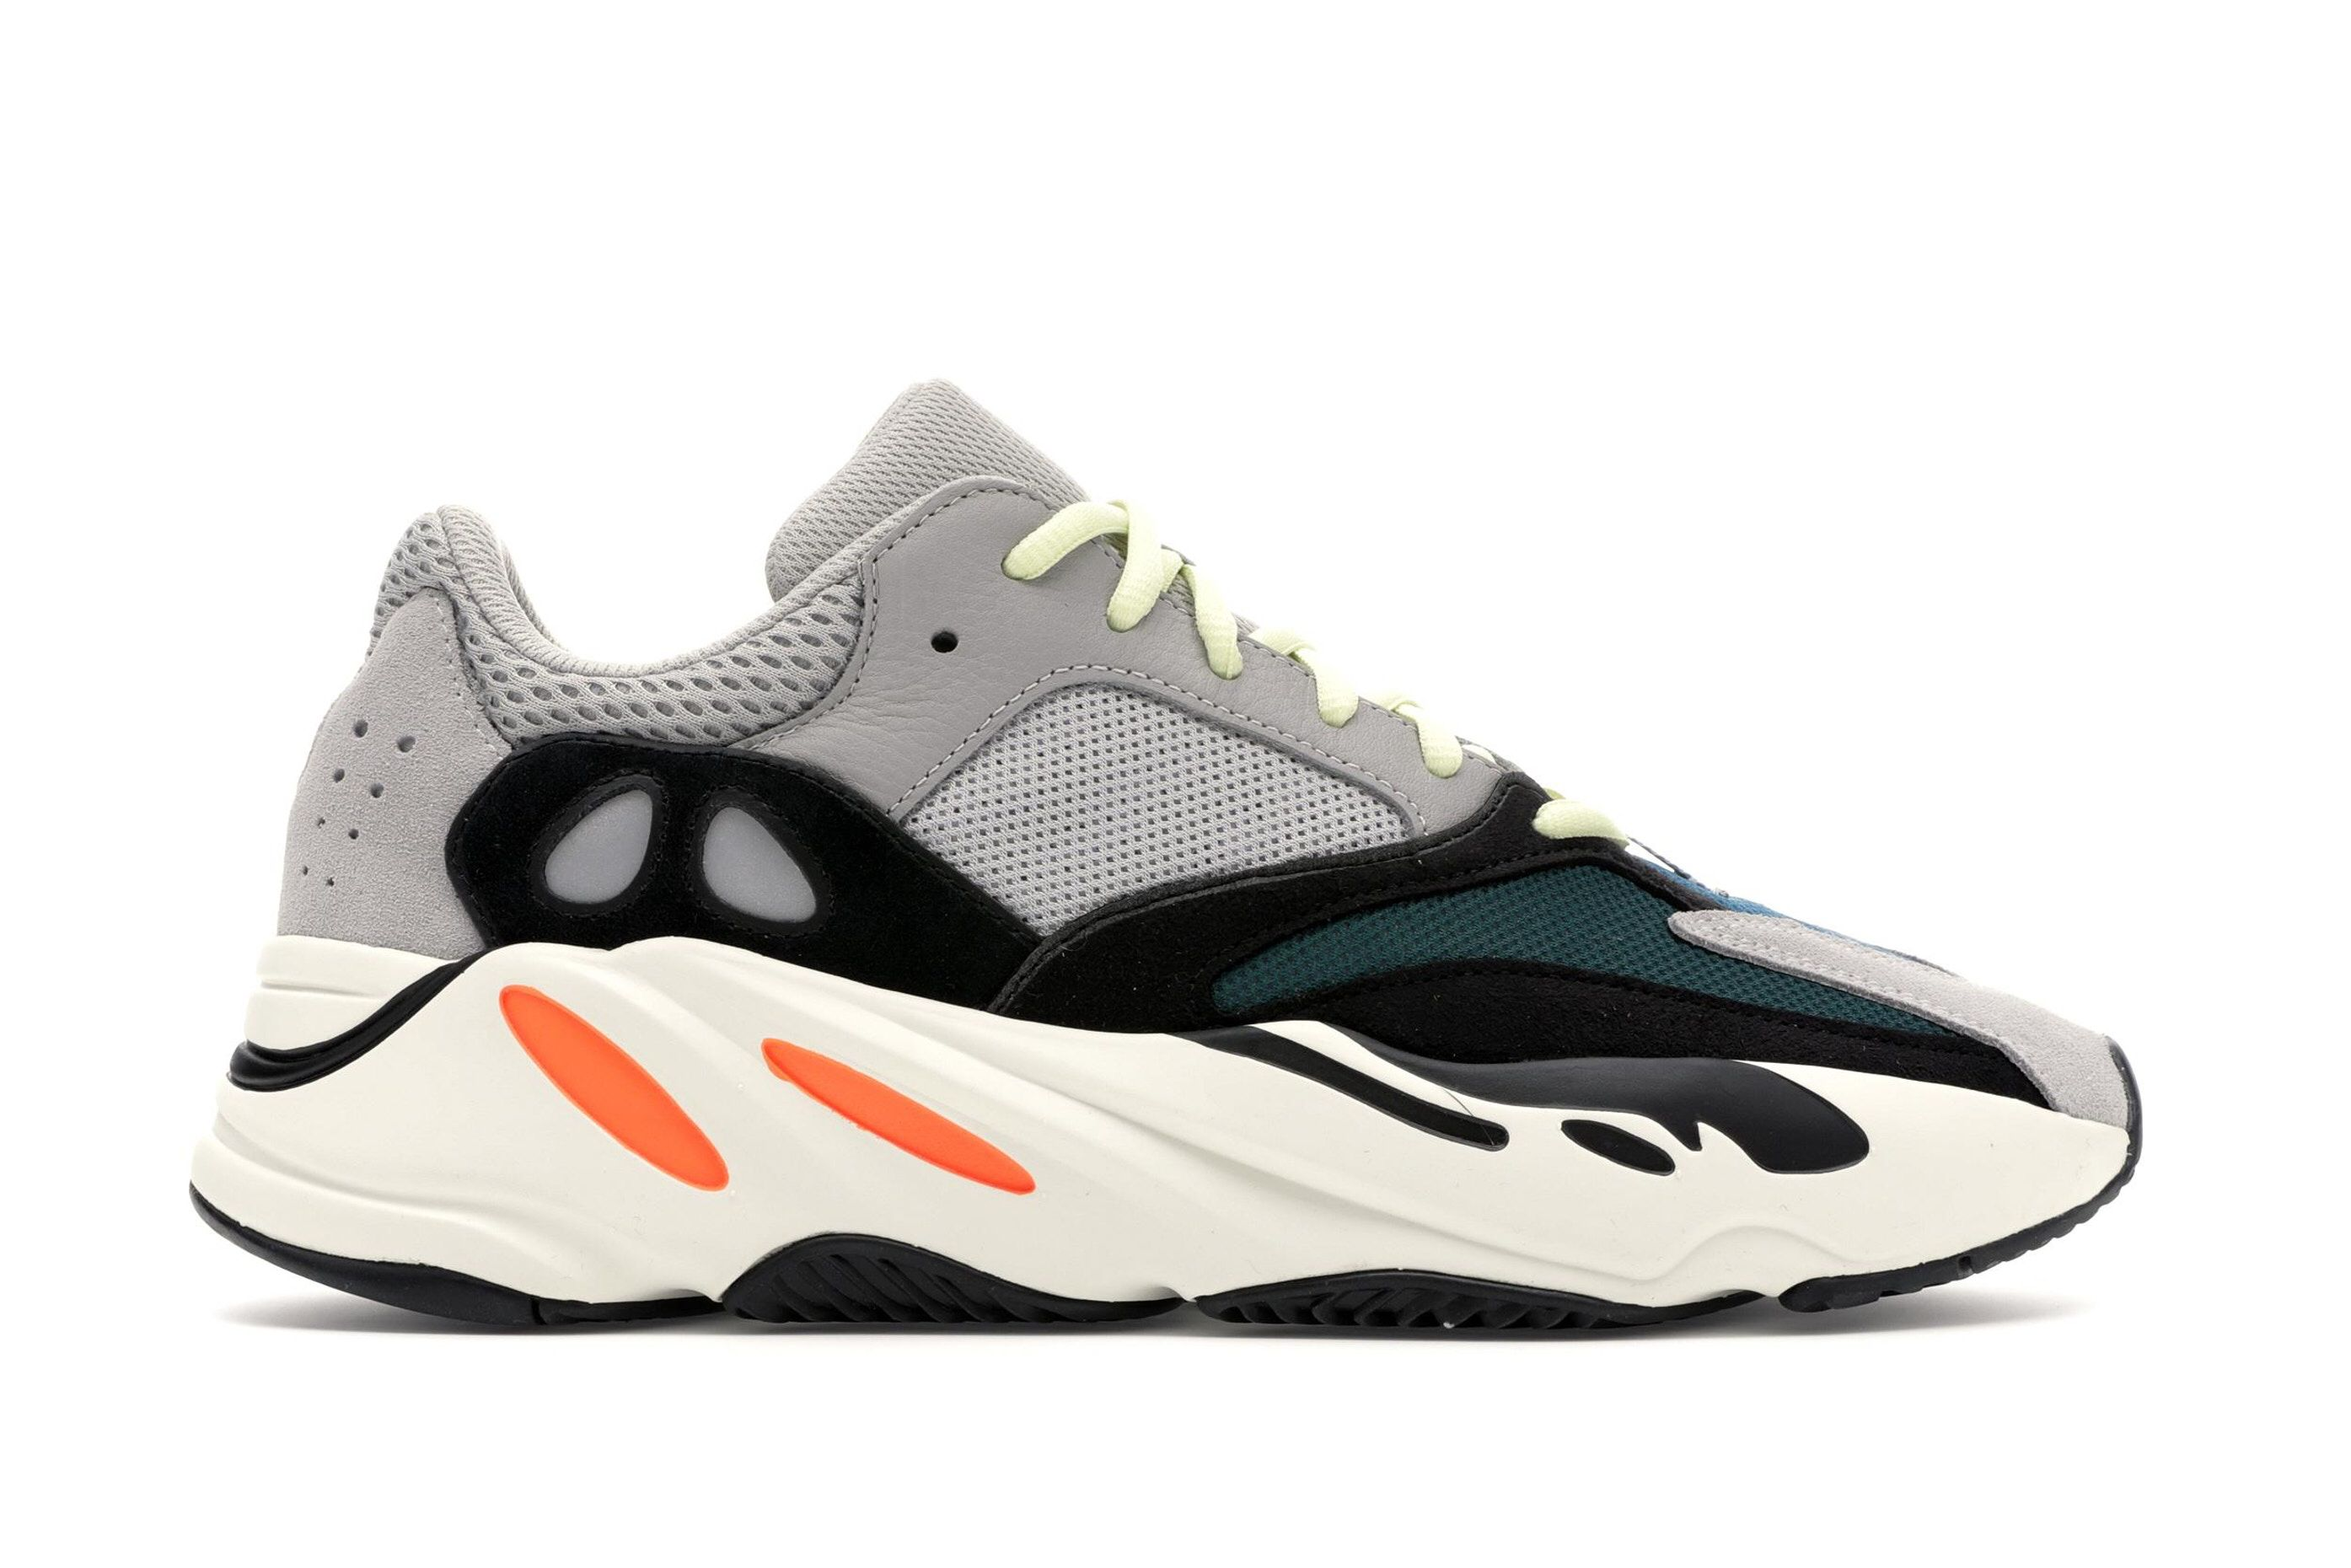 379dbe6a2 Check out the adidas Yeezy Wave Runner 700 Solid Grey available on StockX